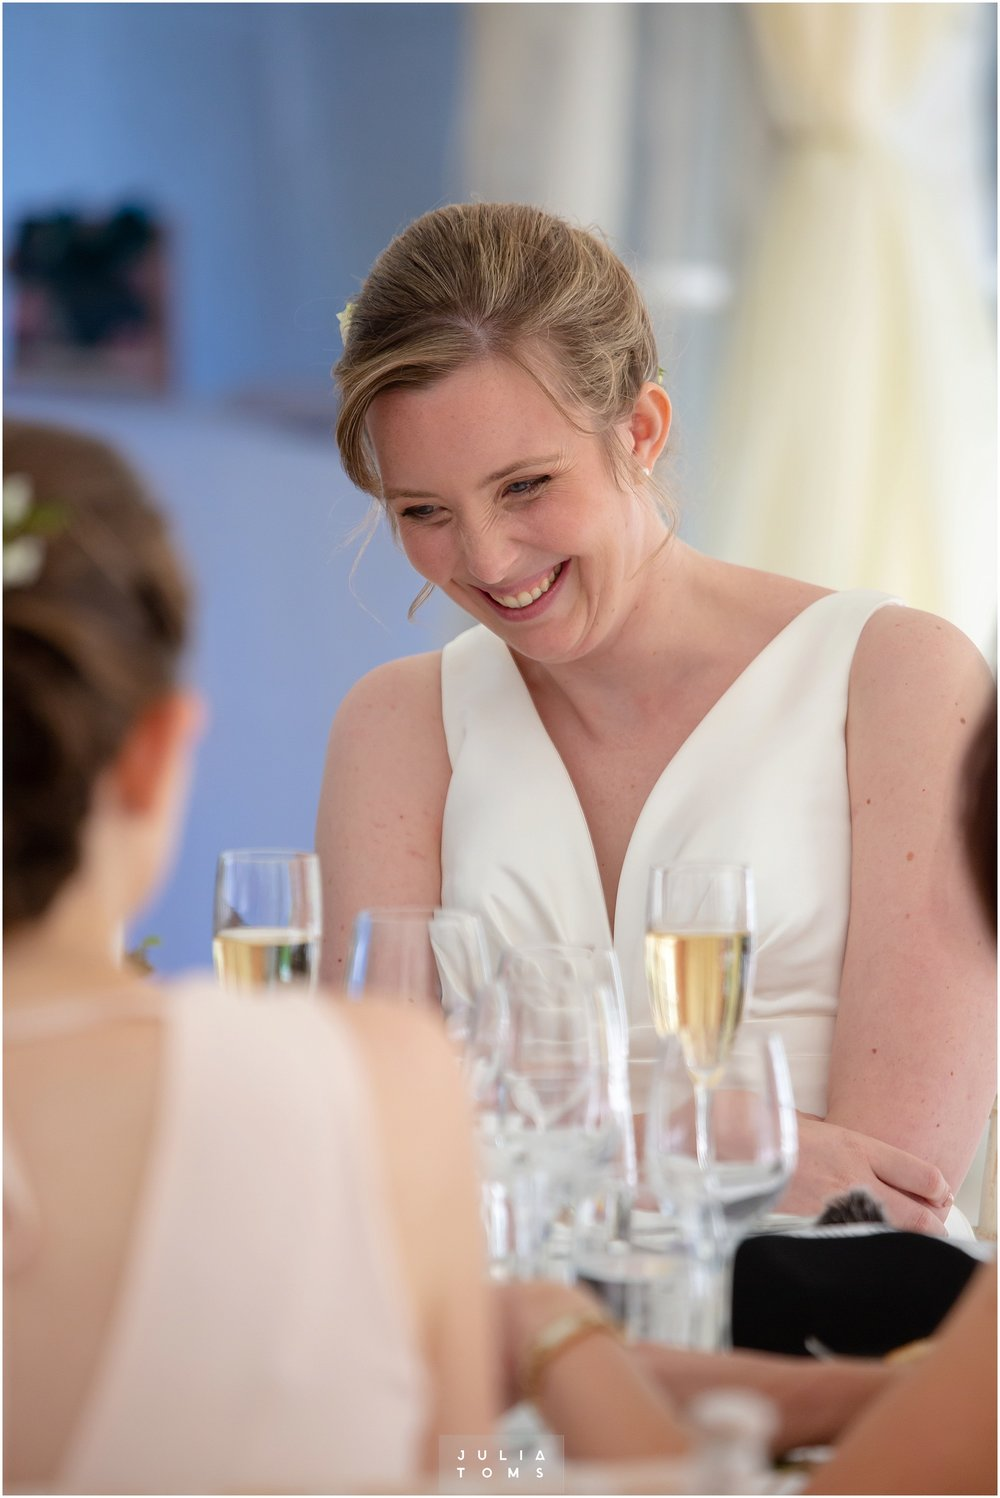 westsussex_wedding_photographer_westdean_116.jpg